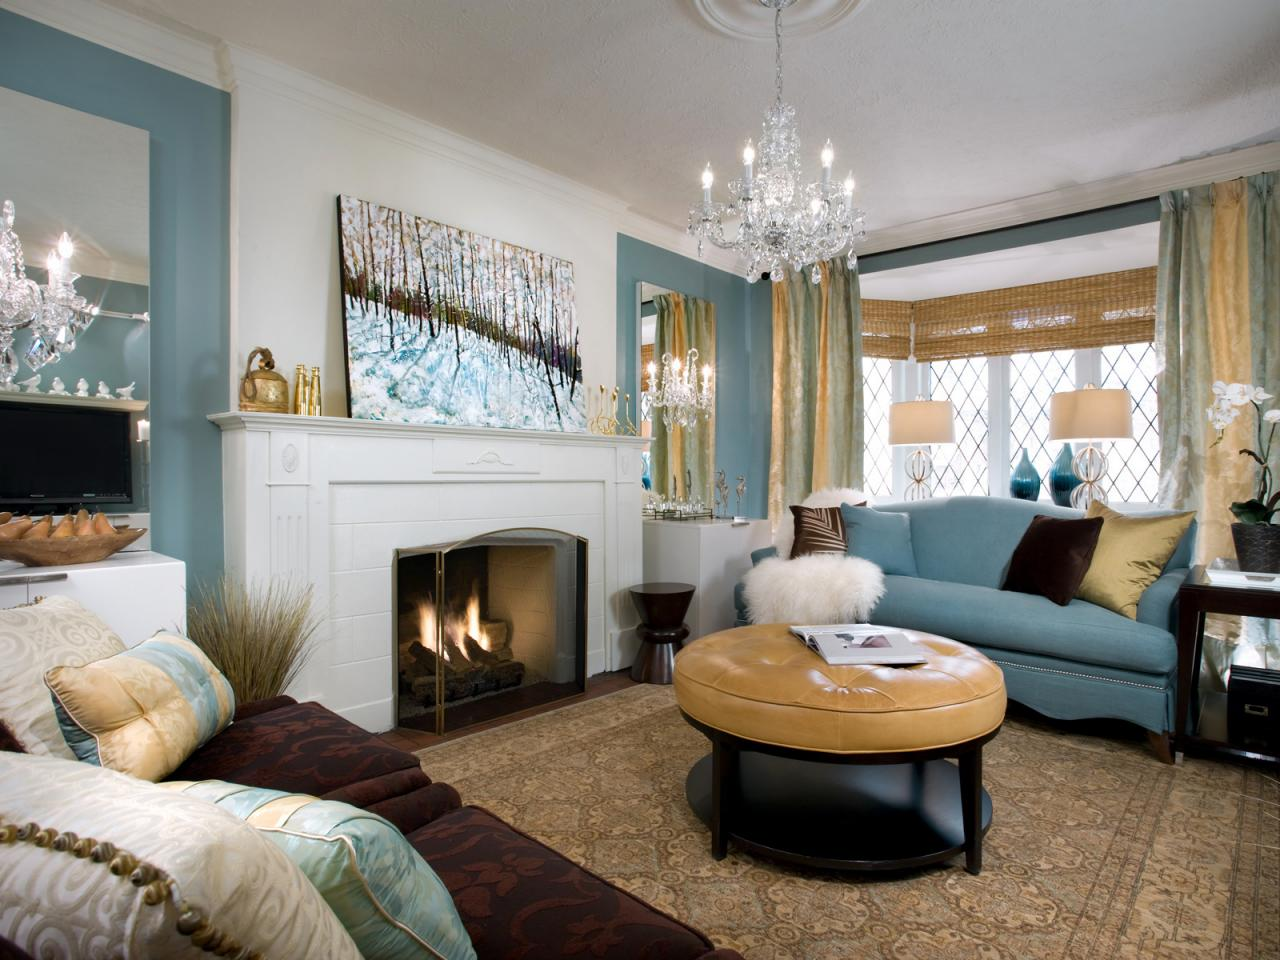 Top Ambiantes 9 Fireplace Design Ideas From Candice Olson Candice